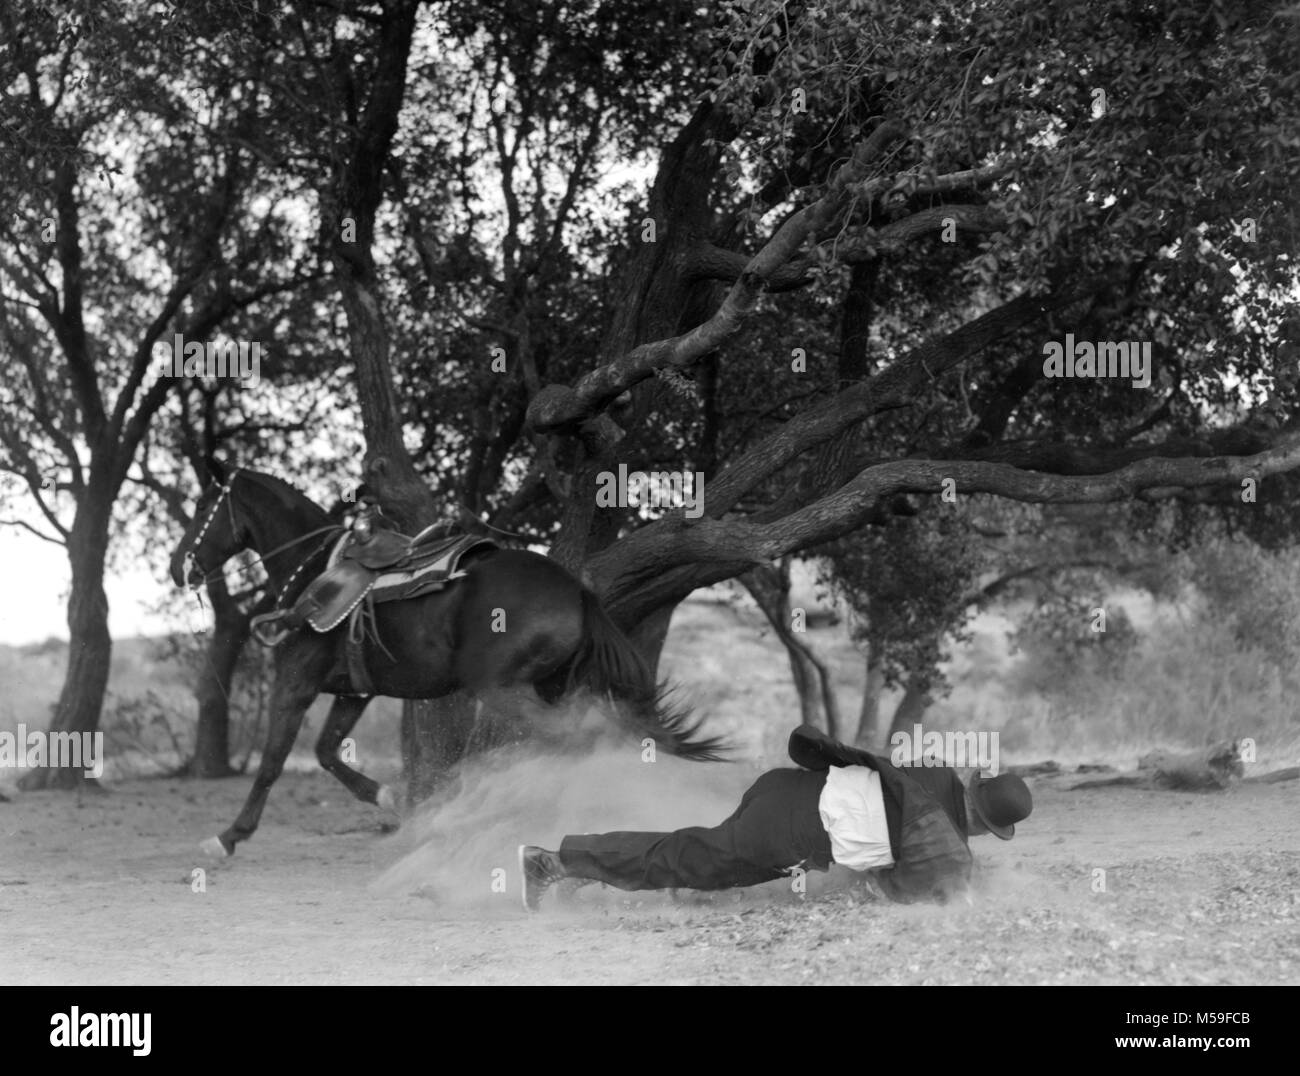 A man, possibly a stunt man,  in a bowler hat hits the ground after falling off a galloping horse, ca. 1920. - Stock Image